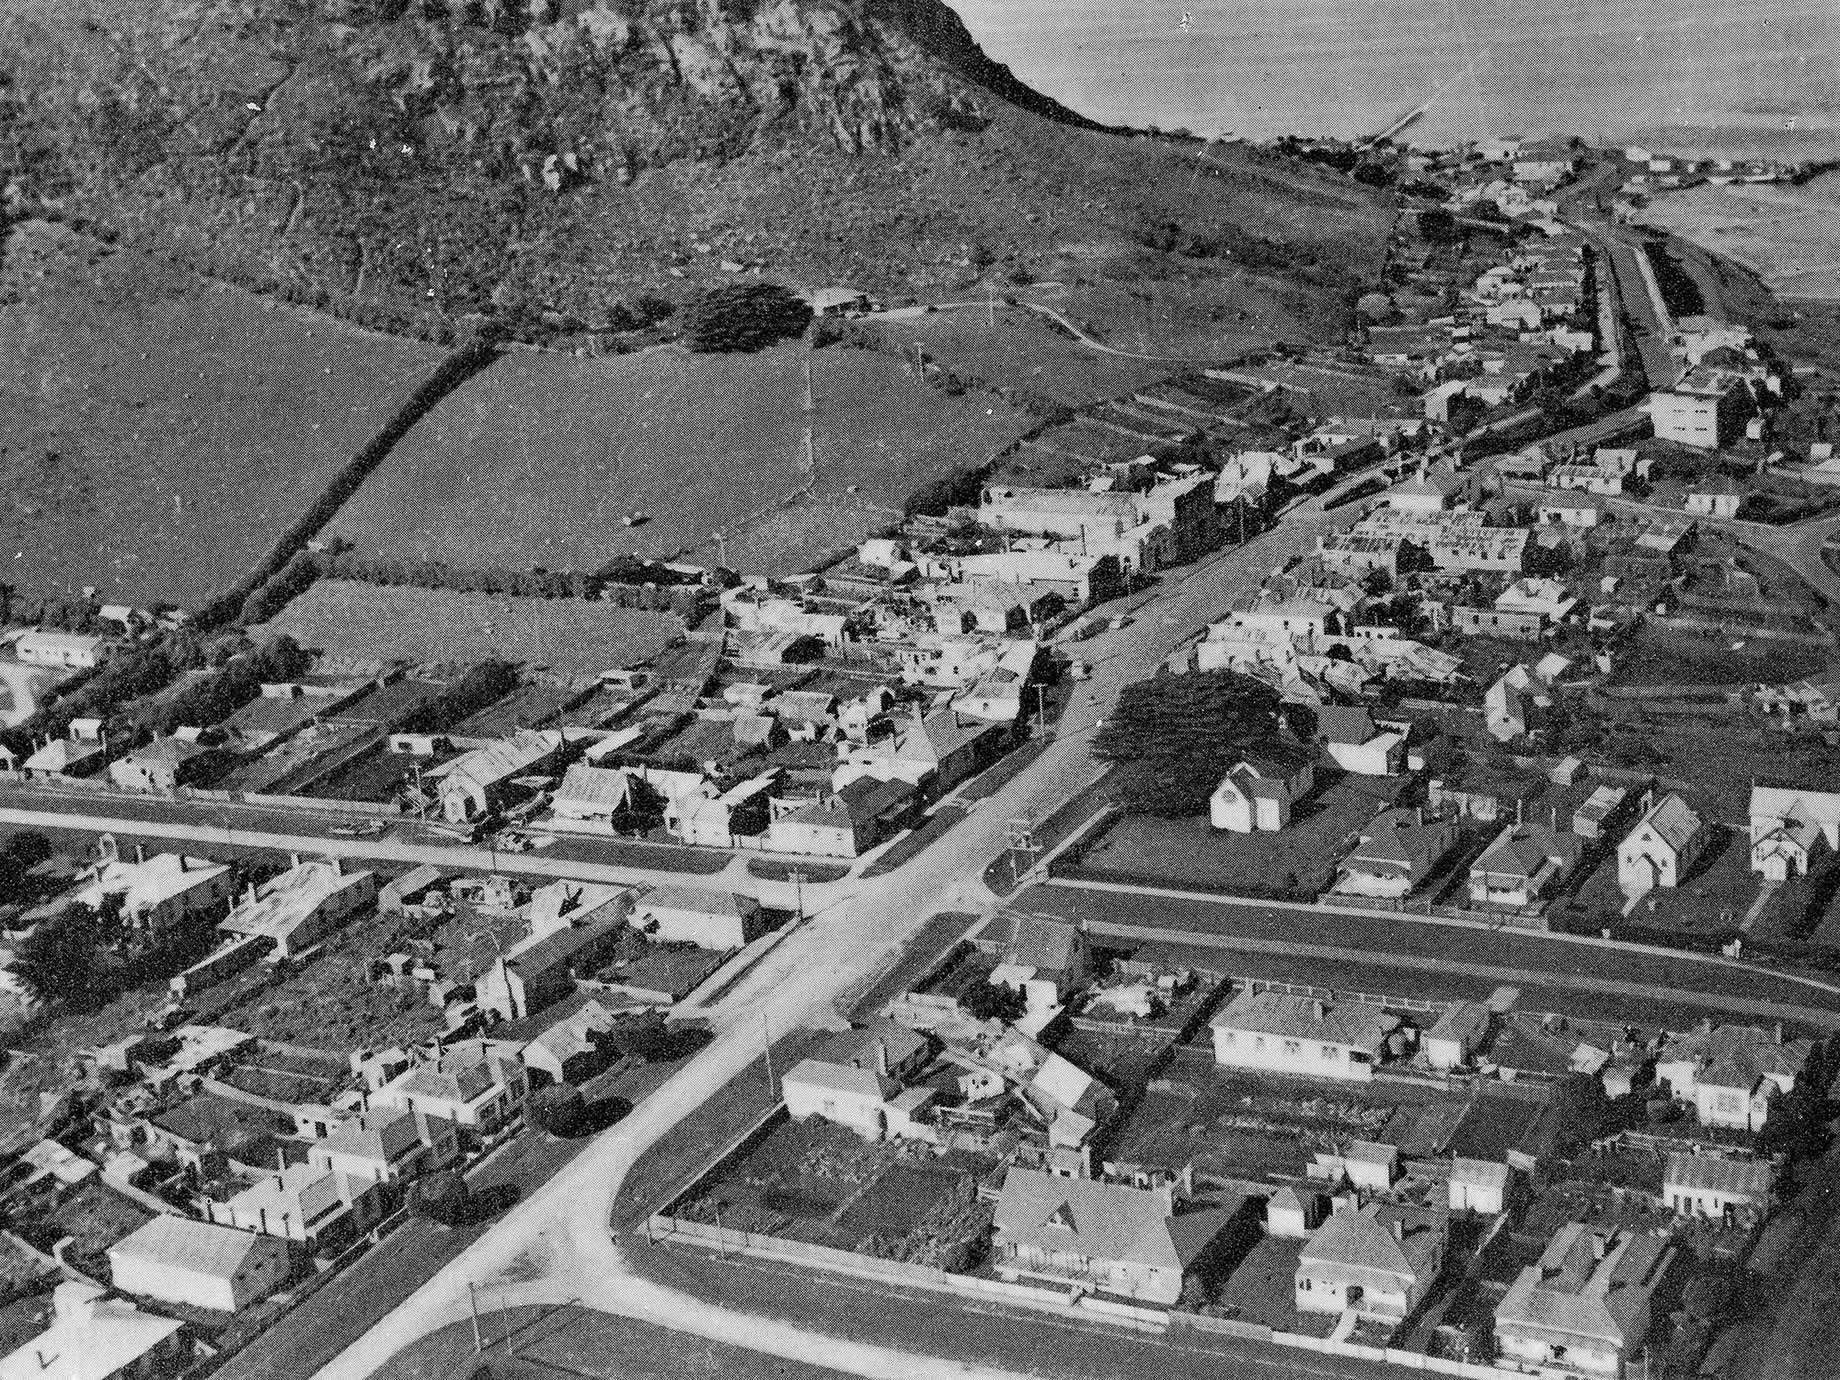 Aerial view of the Stanley township surrounding The Nut, c1940